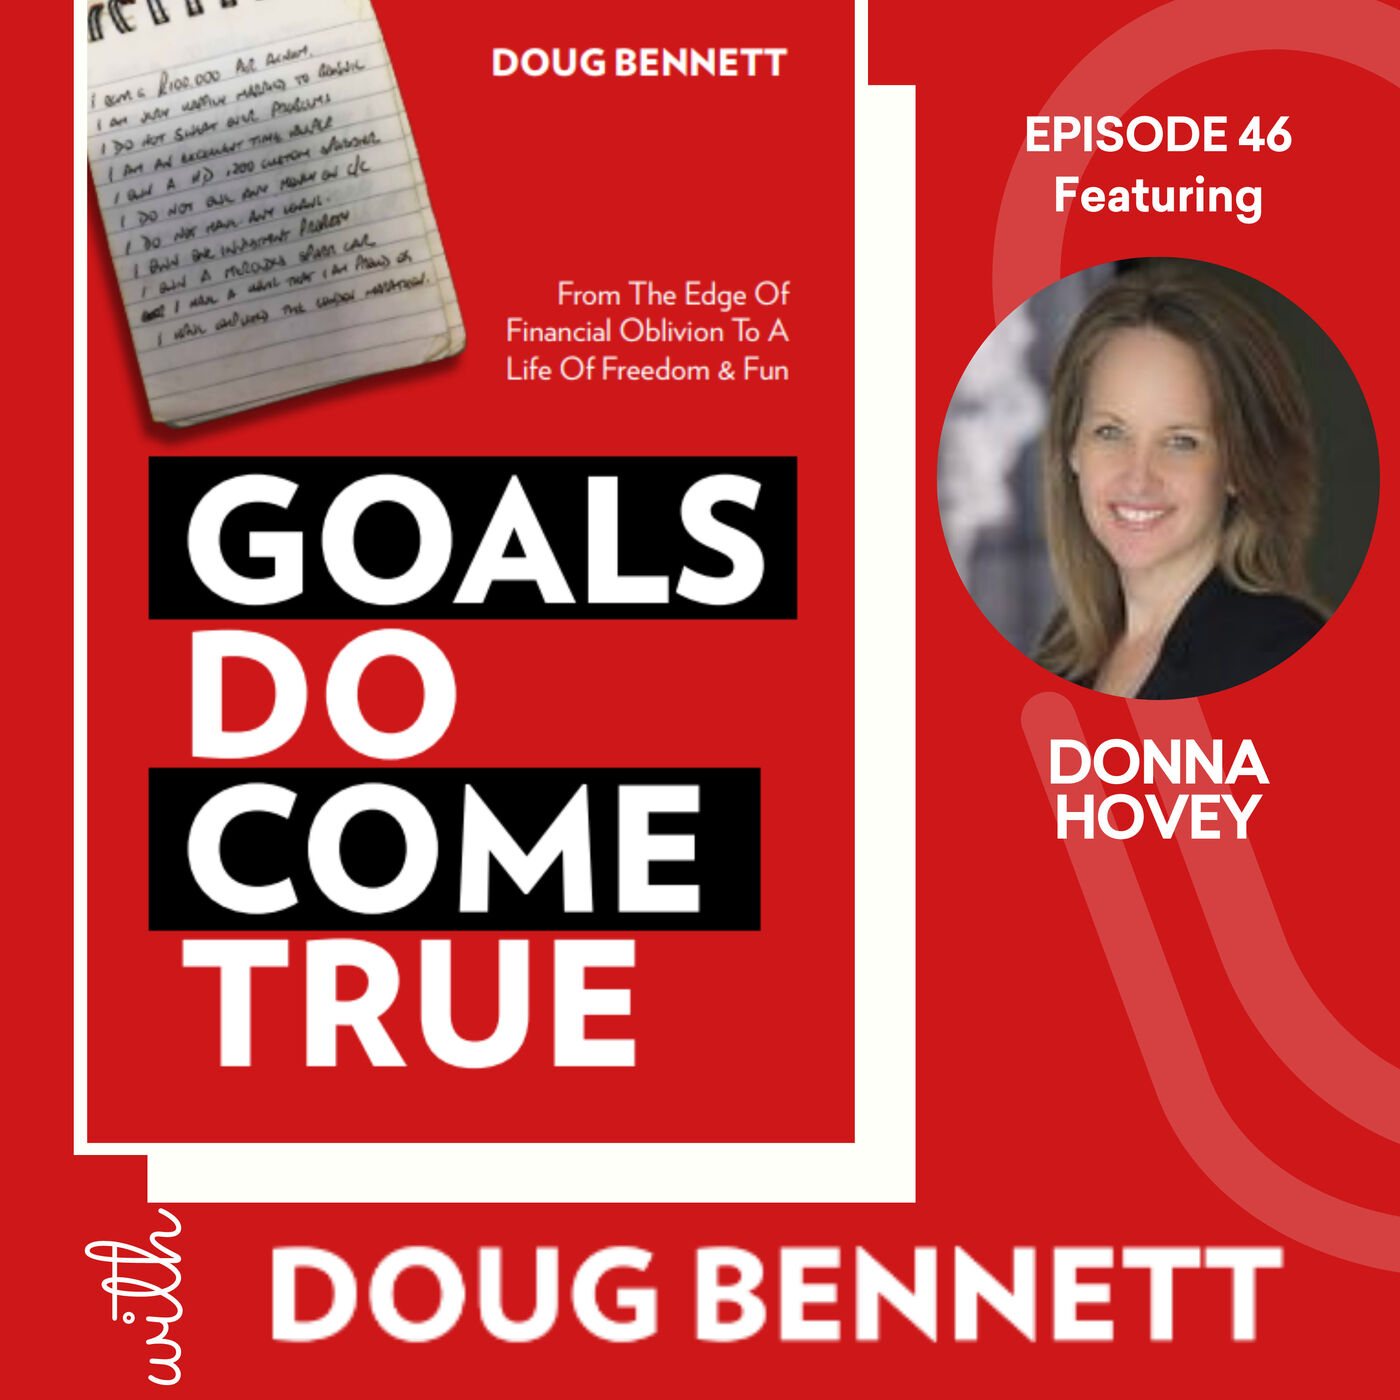 EP 46: Get Your Act Together Using Goals with Donna Hovey